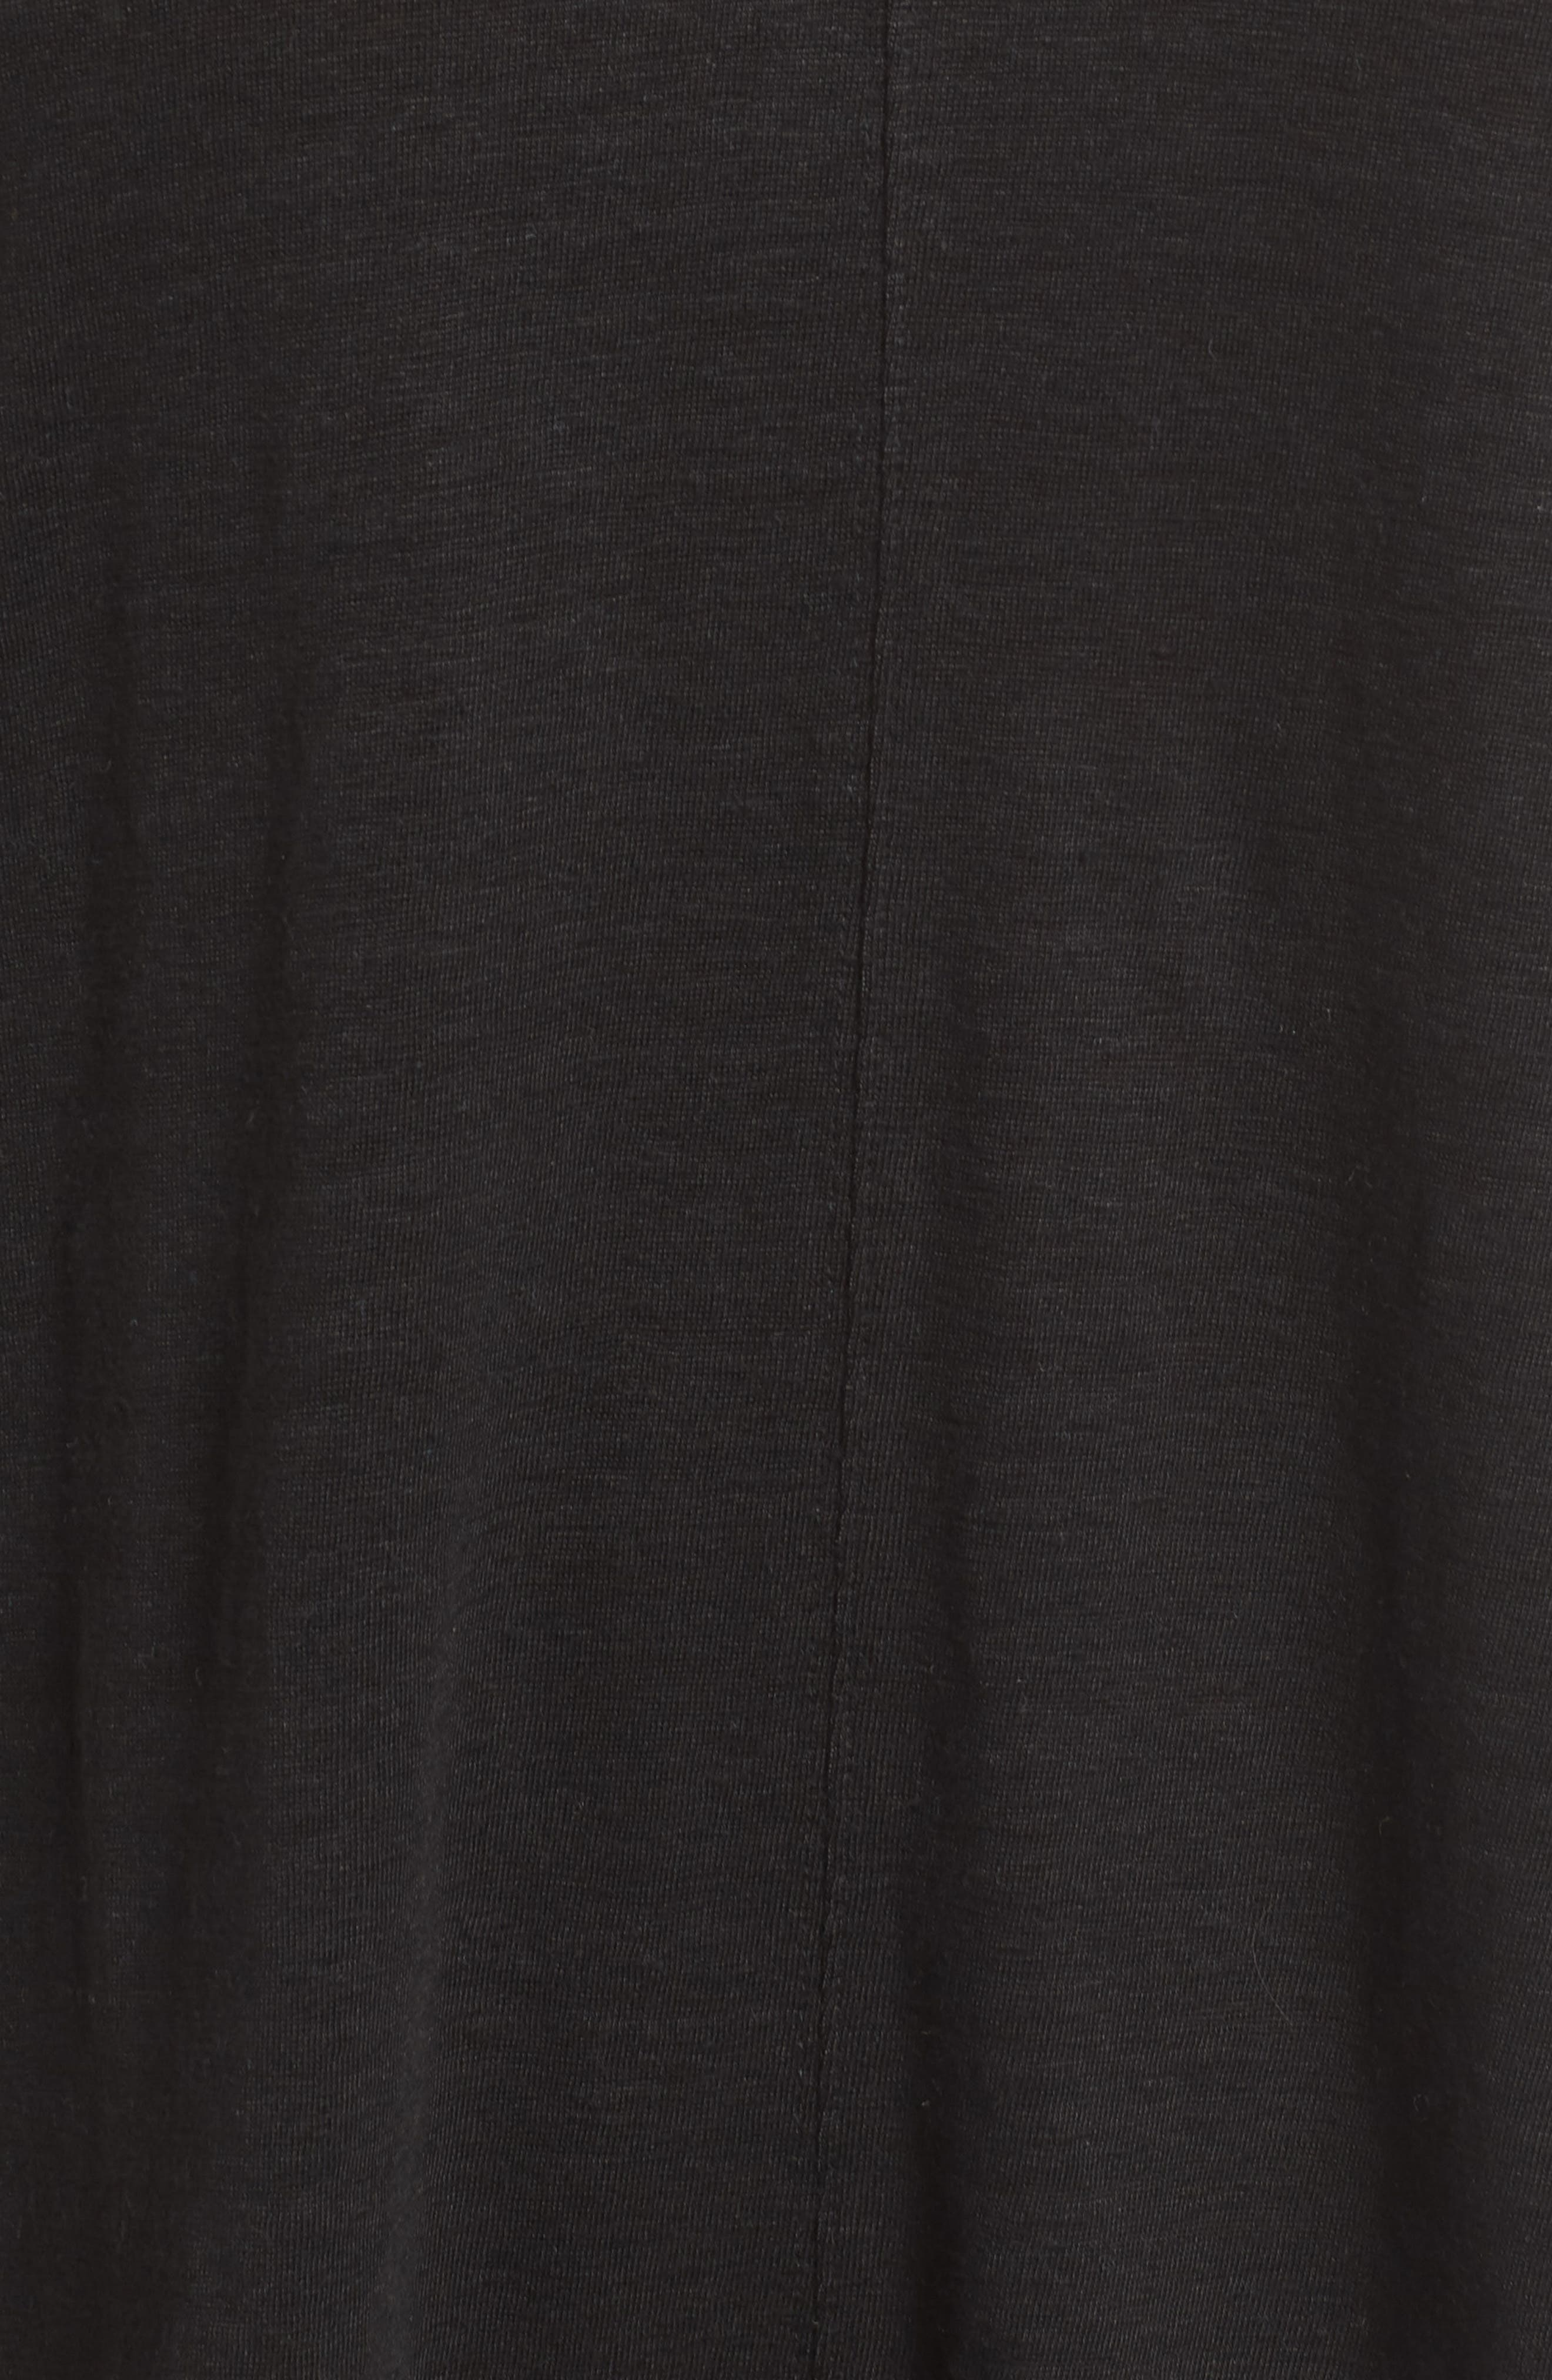 EILEEN FISHER,                             Organic Linen Top,                             Alternate thumbnail 6, color,                             001